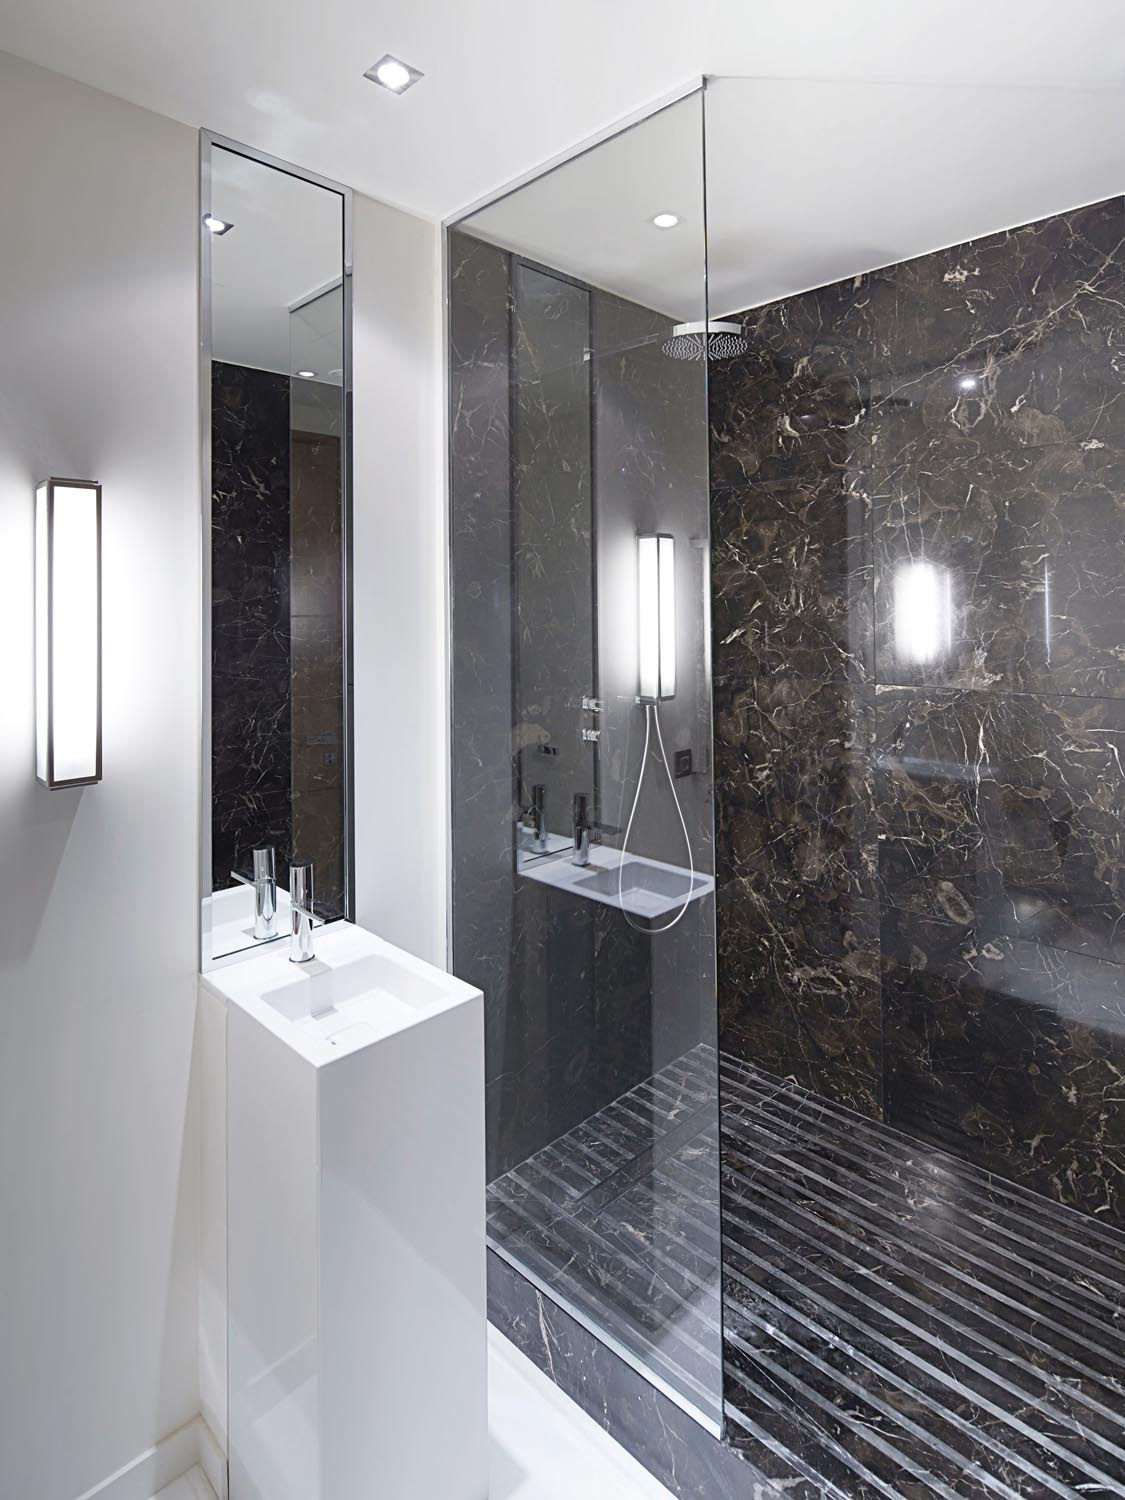 Expert tip: Opting for a smaller basin creates the illusion of space in a guest bathroom